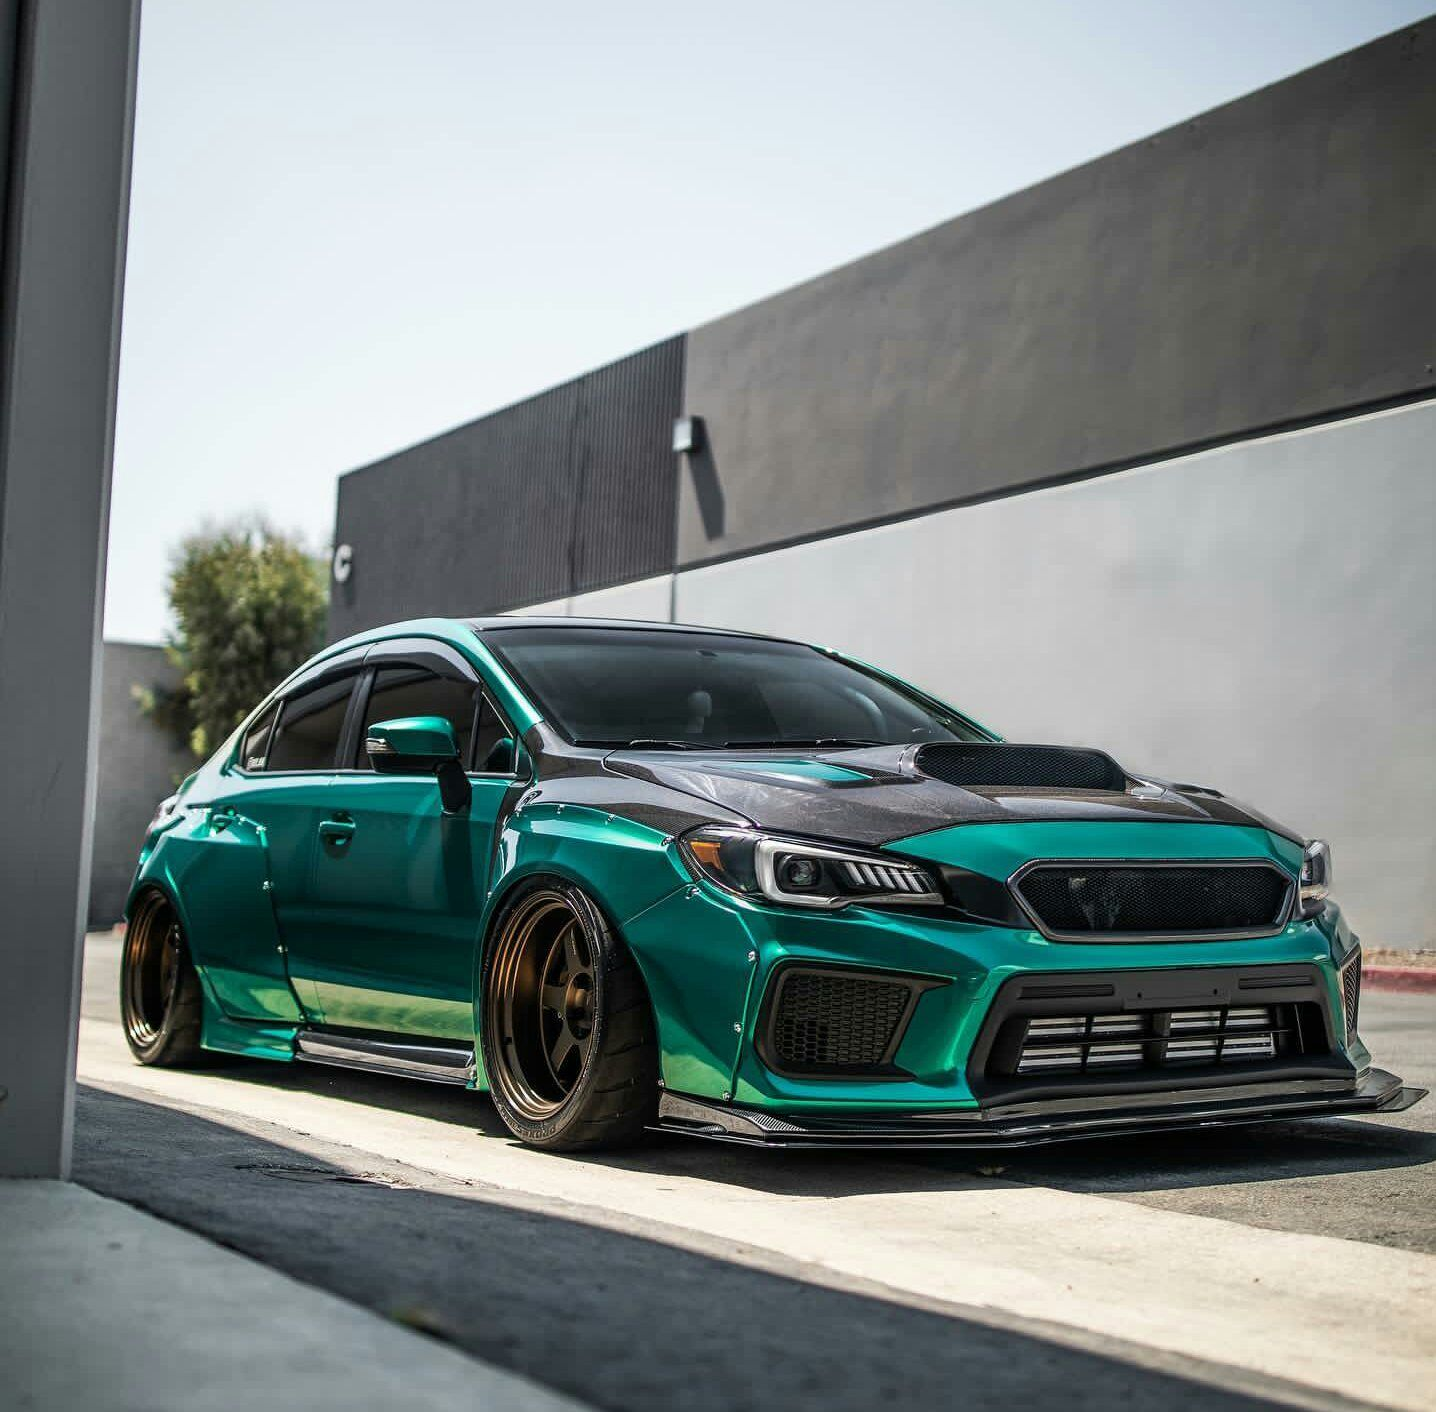 Sport Car Collections Jayde Mercedes Benz Customized: Check Out Our Subaru STI T-Shirt Collection